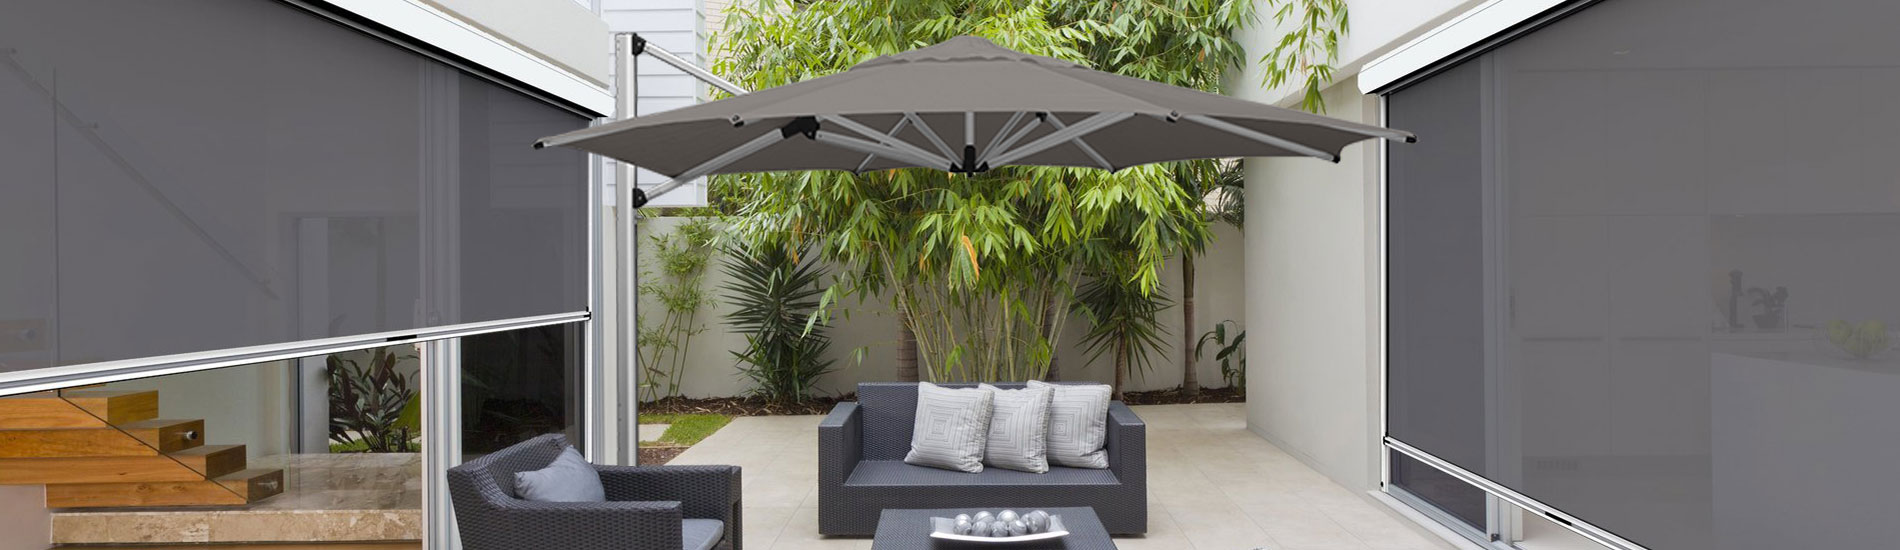 Outdoor Blinds Adelaide | Outdoor Umbrellas Adelaide